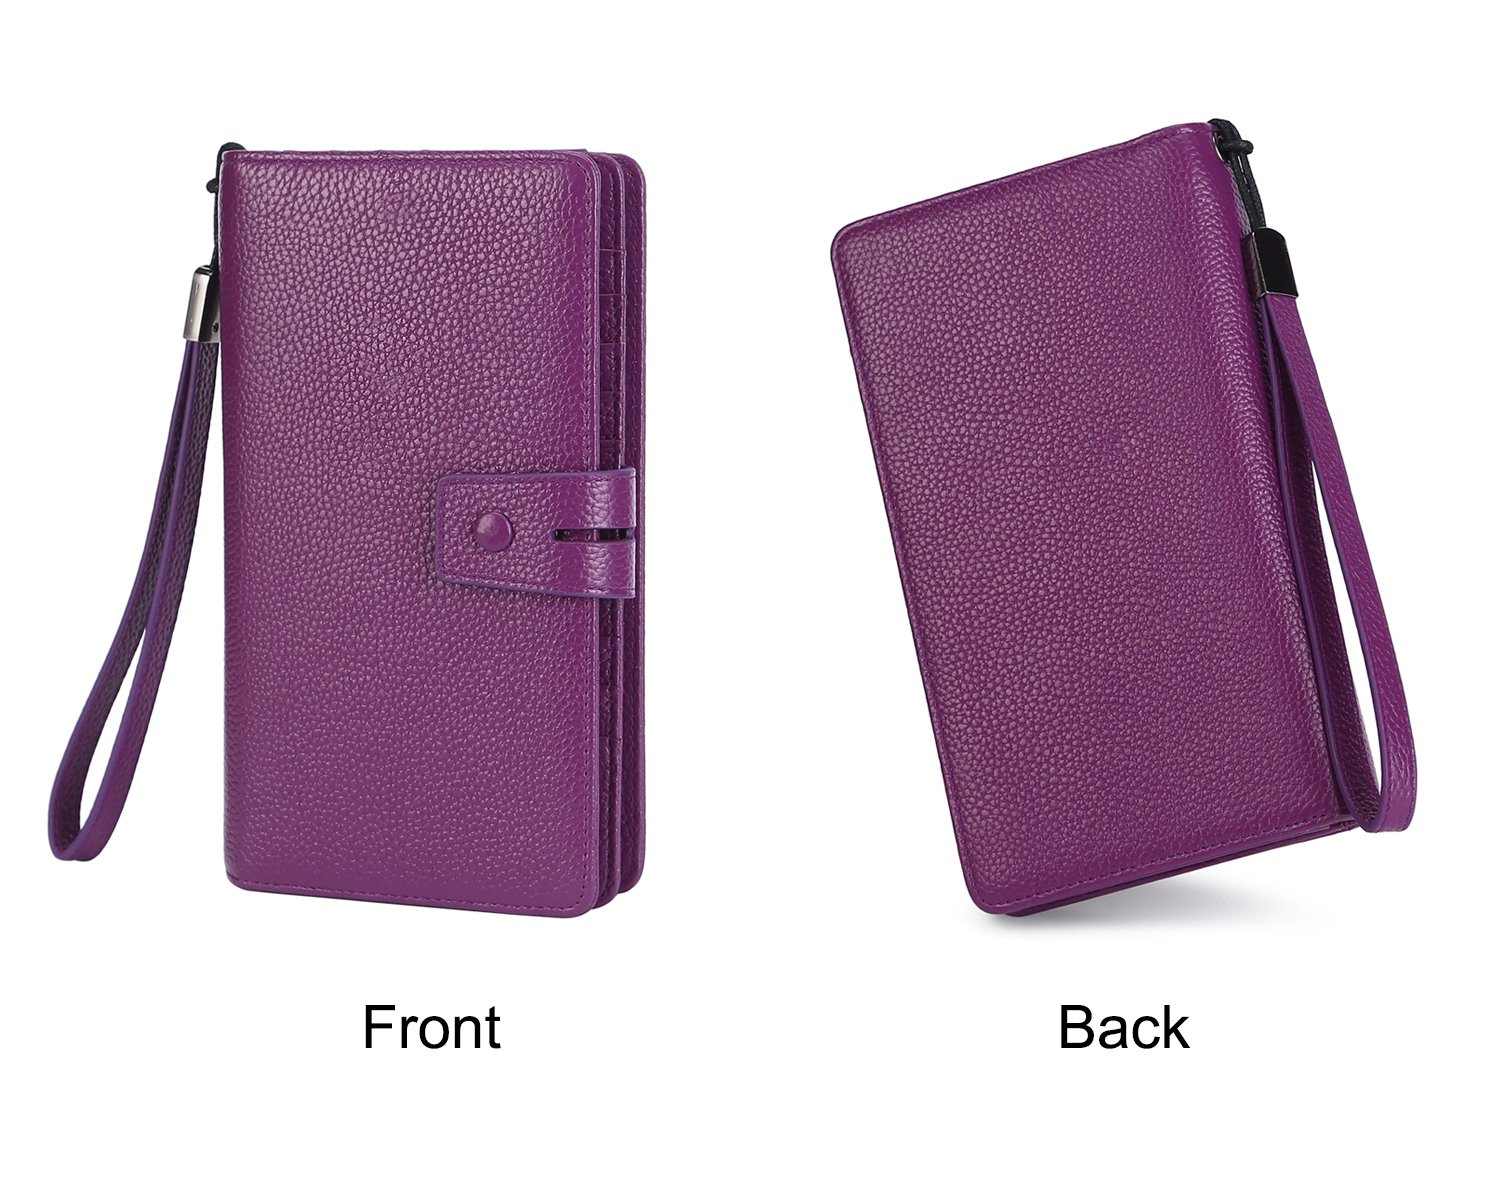 AINIMOER Women's Big RFID Blocking Leather Zip Around Wallets for Womens Clutch Organizer Checkbook Holder Large Travel Purse(Lichee Purple) by AINIMOER (Image #7)